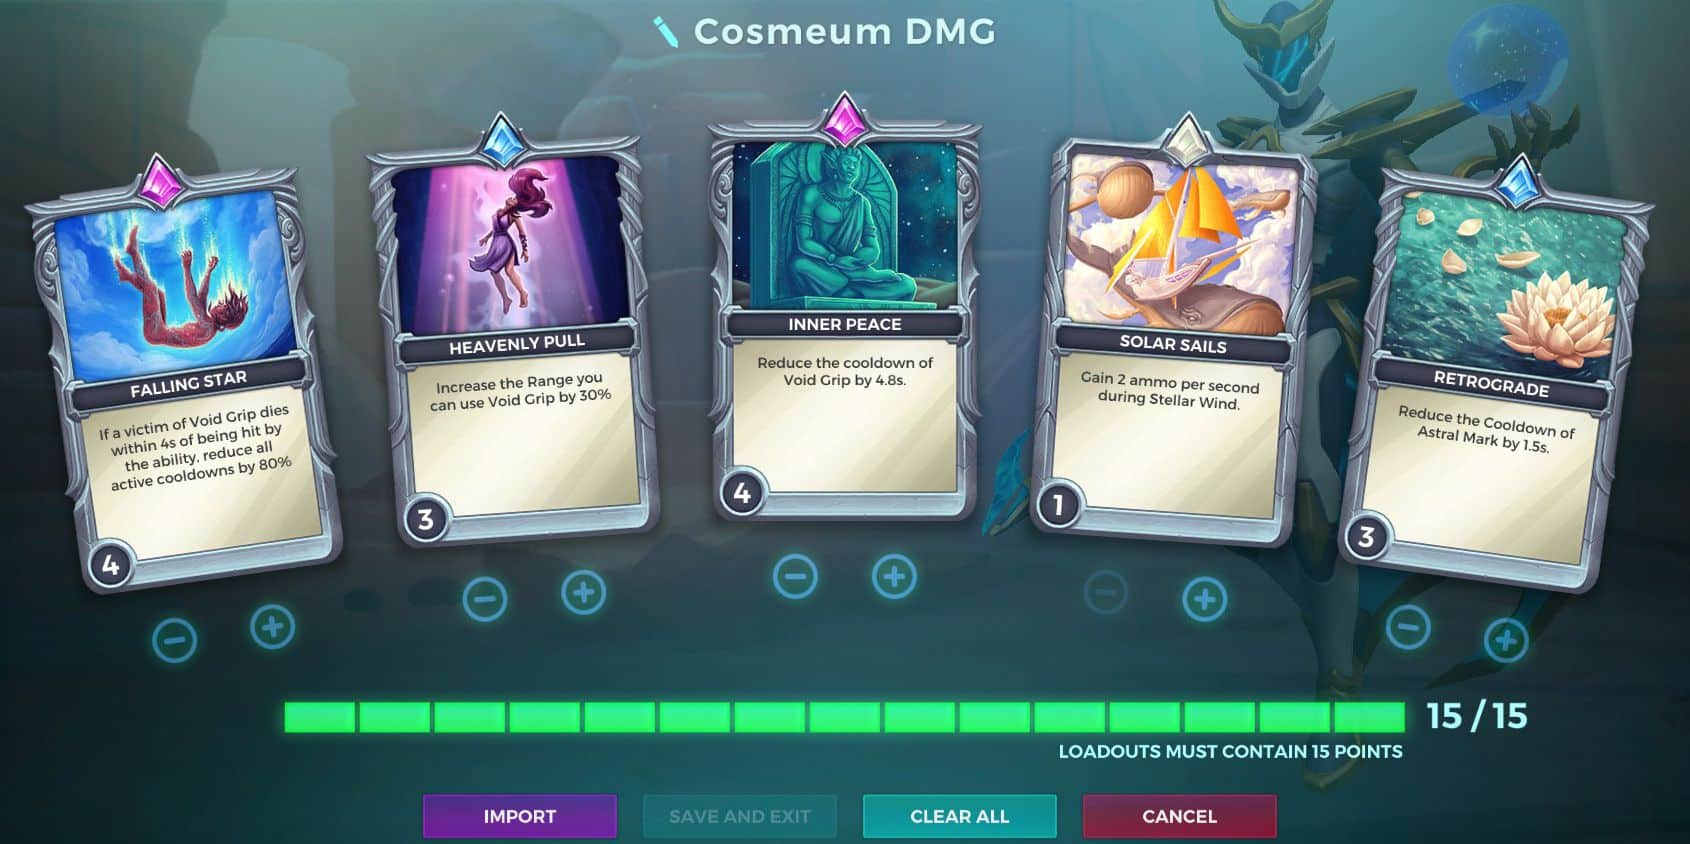 Jenos, The Power Cosmeum Ability, Damage Loadout, Paladins